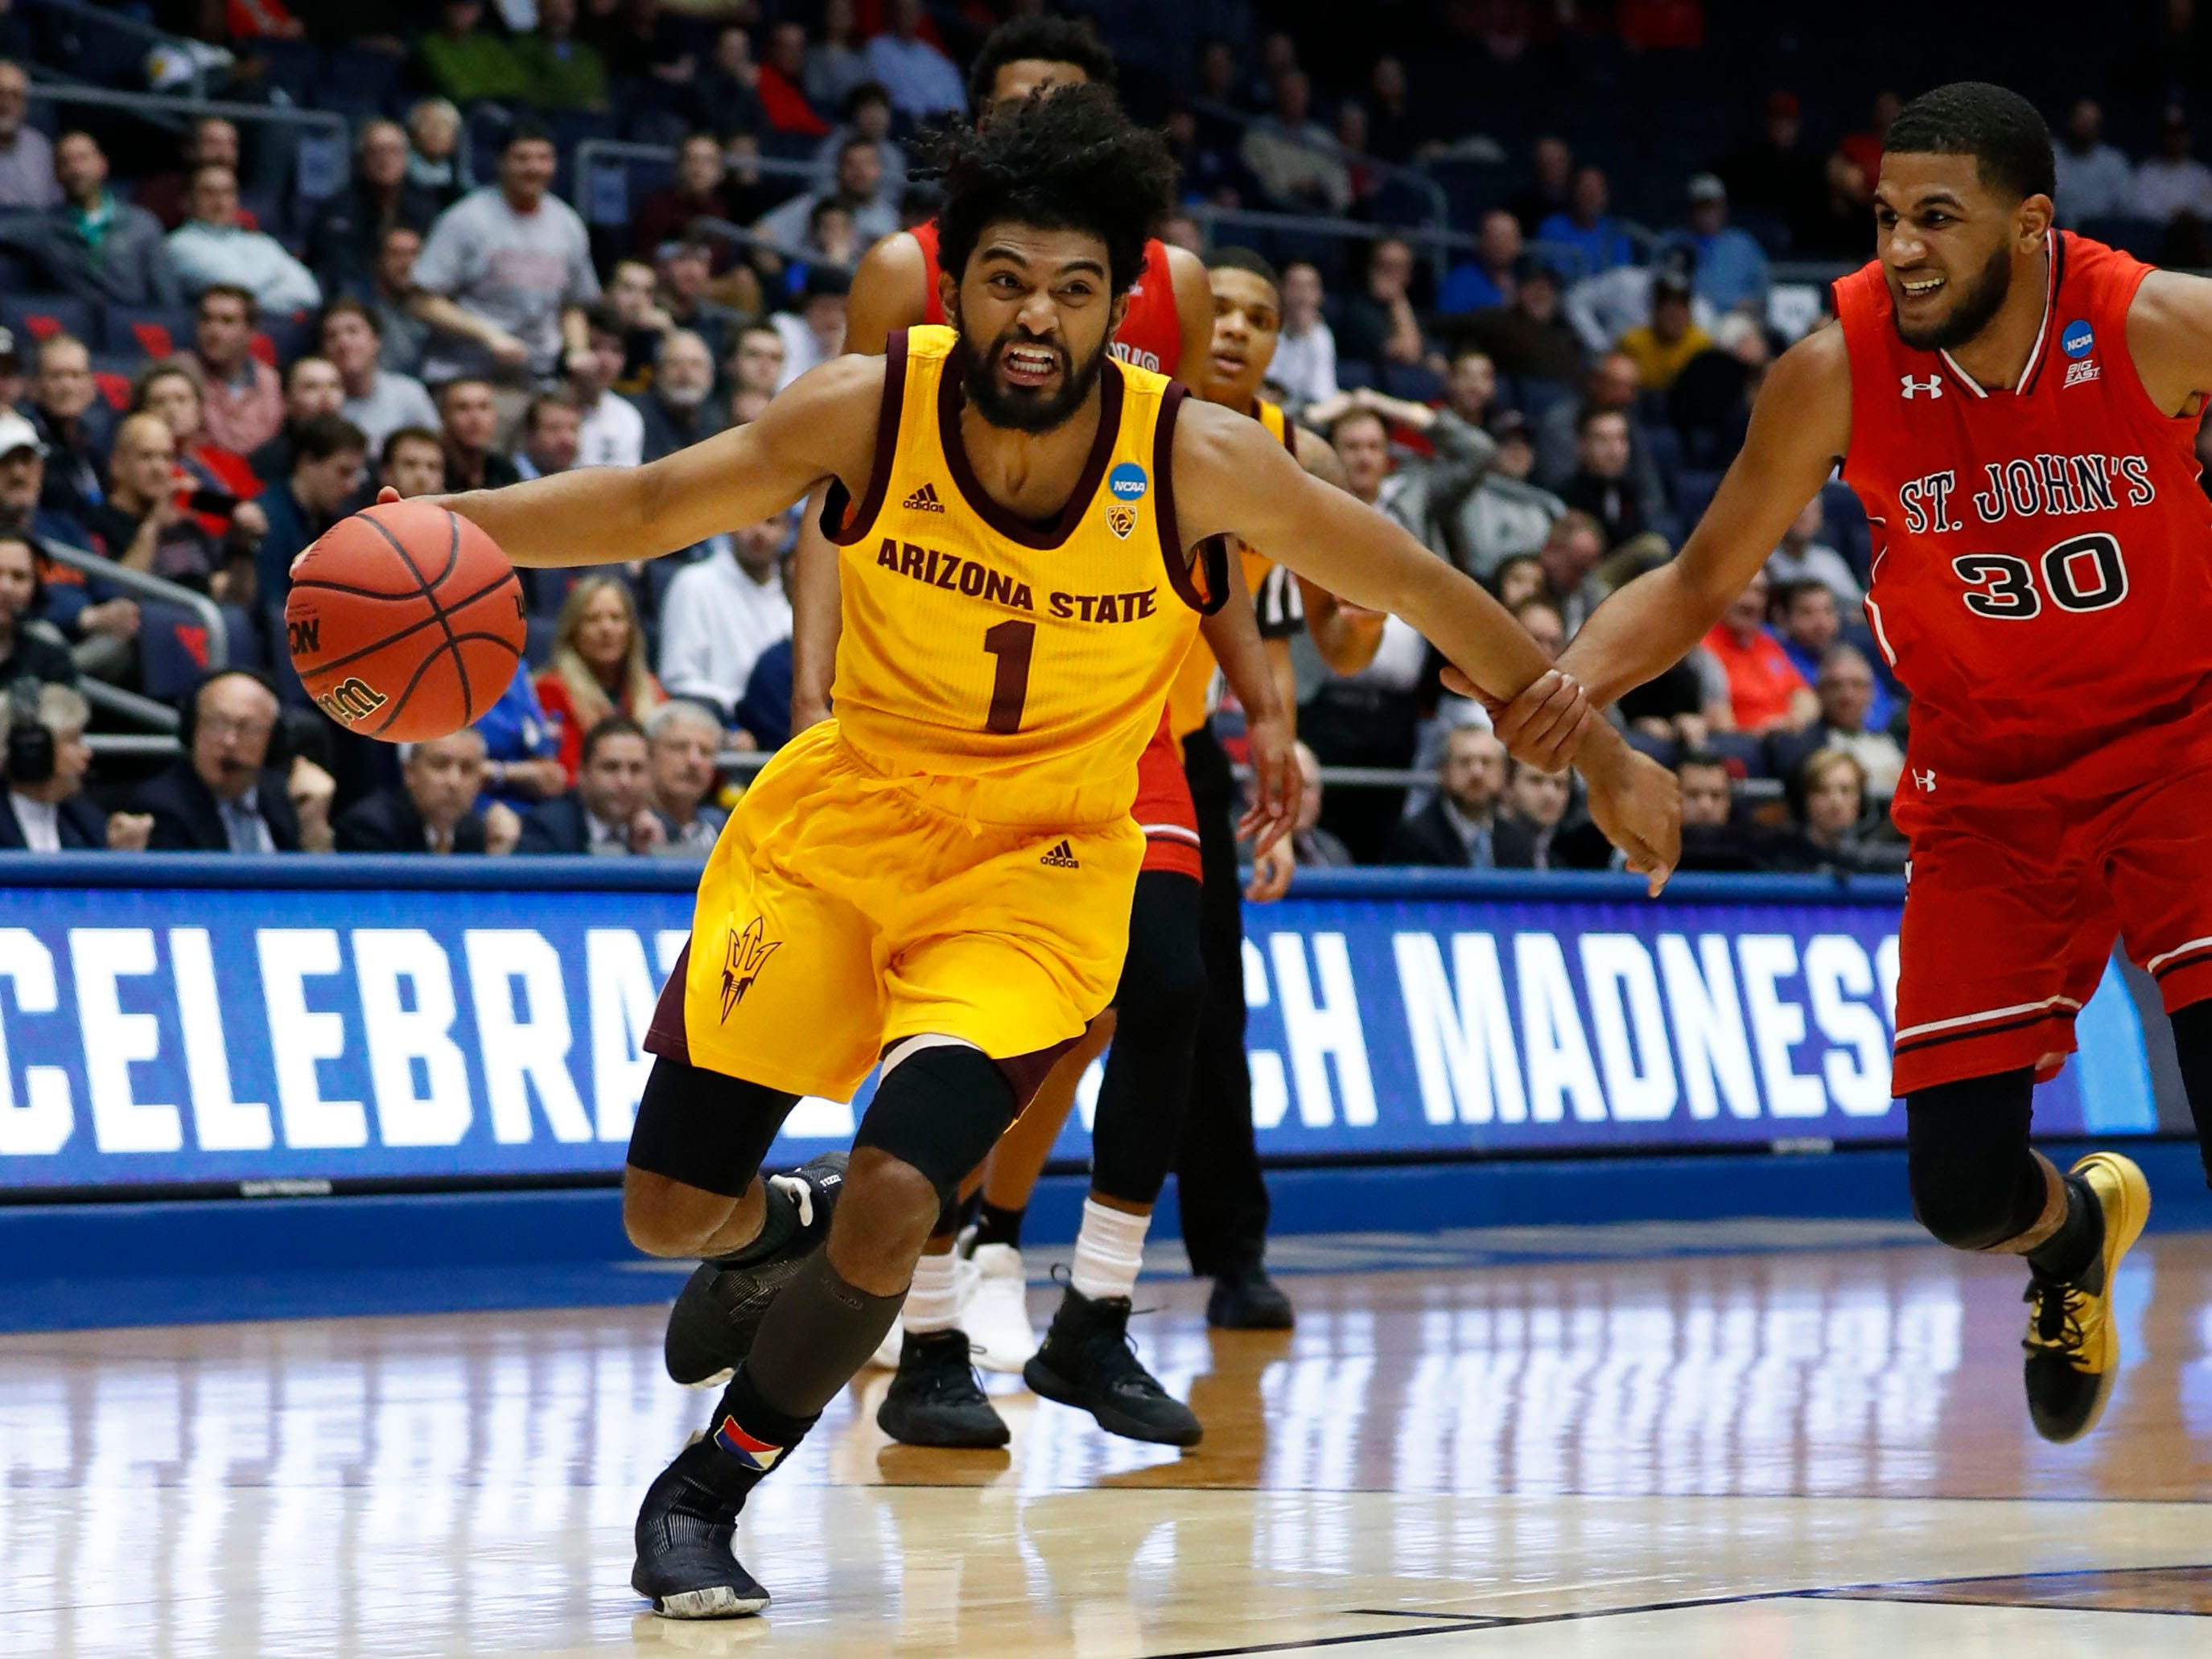 Mar 20, 2019; Dayton, OH, USA; Arizona State Sun Devils guard Remy Martin (1) drives the ball down the court in the second half against the St. John's Red Storm in the First Four of the 2019 NCAA Tournament at Dayton Arena. Mandatory Credit: Rick Osentoski-USA TODAY Sports